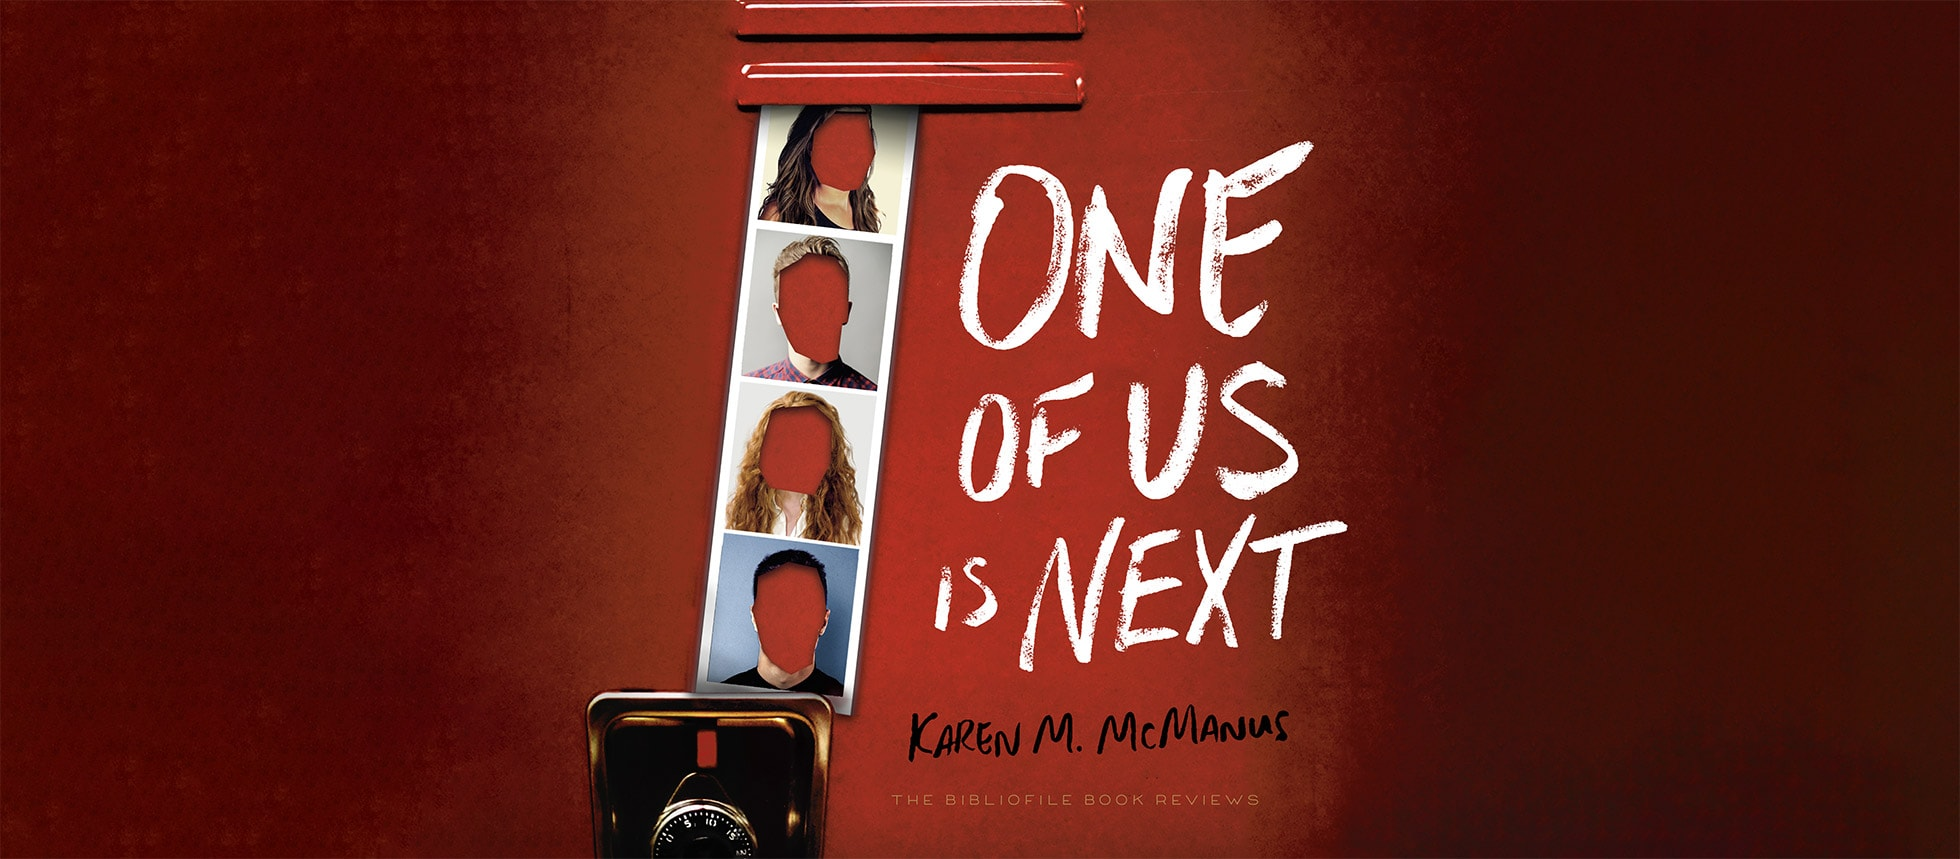 one of us is next karen mcmanus plot summary book synopsis spoilers ending explanation book review